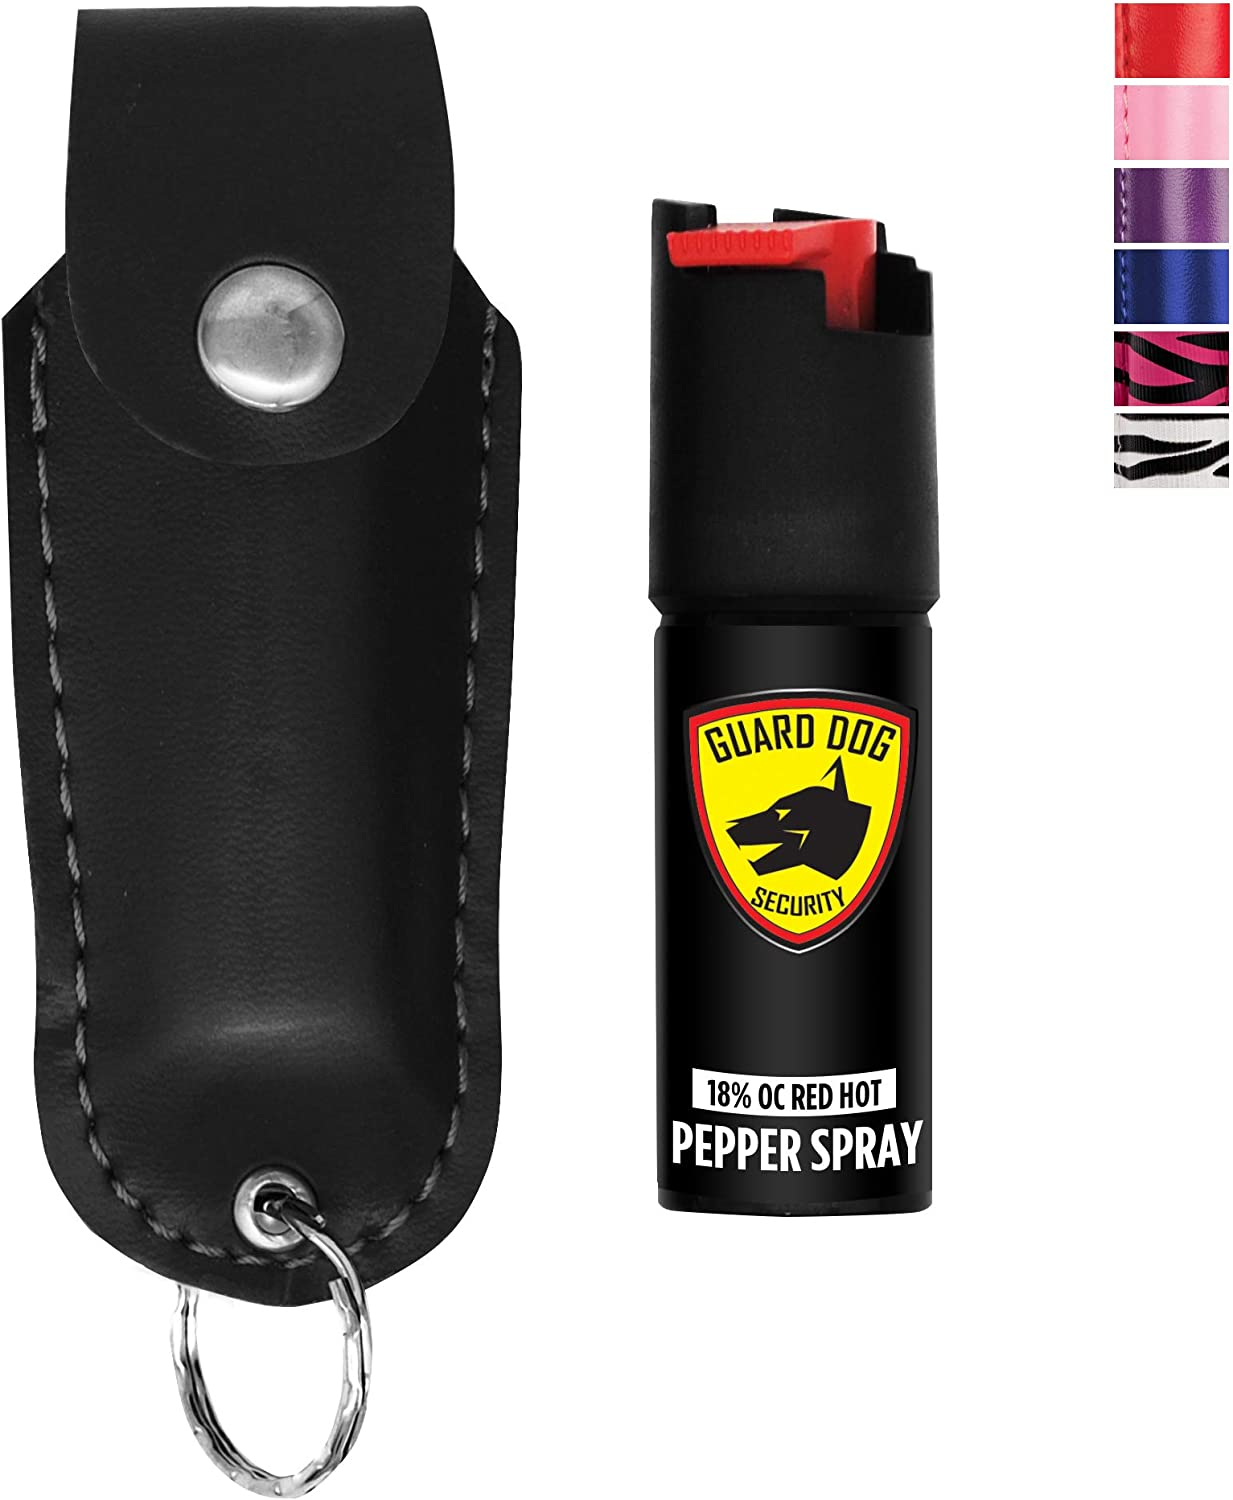 Amazon Com Guard Dog Security Pepper Spray Keychain Red Hot Self Defense Spray With Uv Dye Choose A Leather Holster Color Black Self Defense Pepper Spray Sports Outdoors